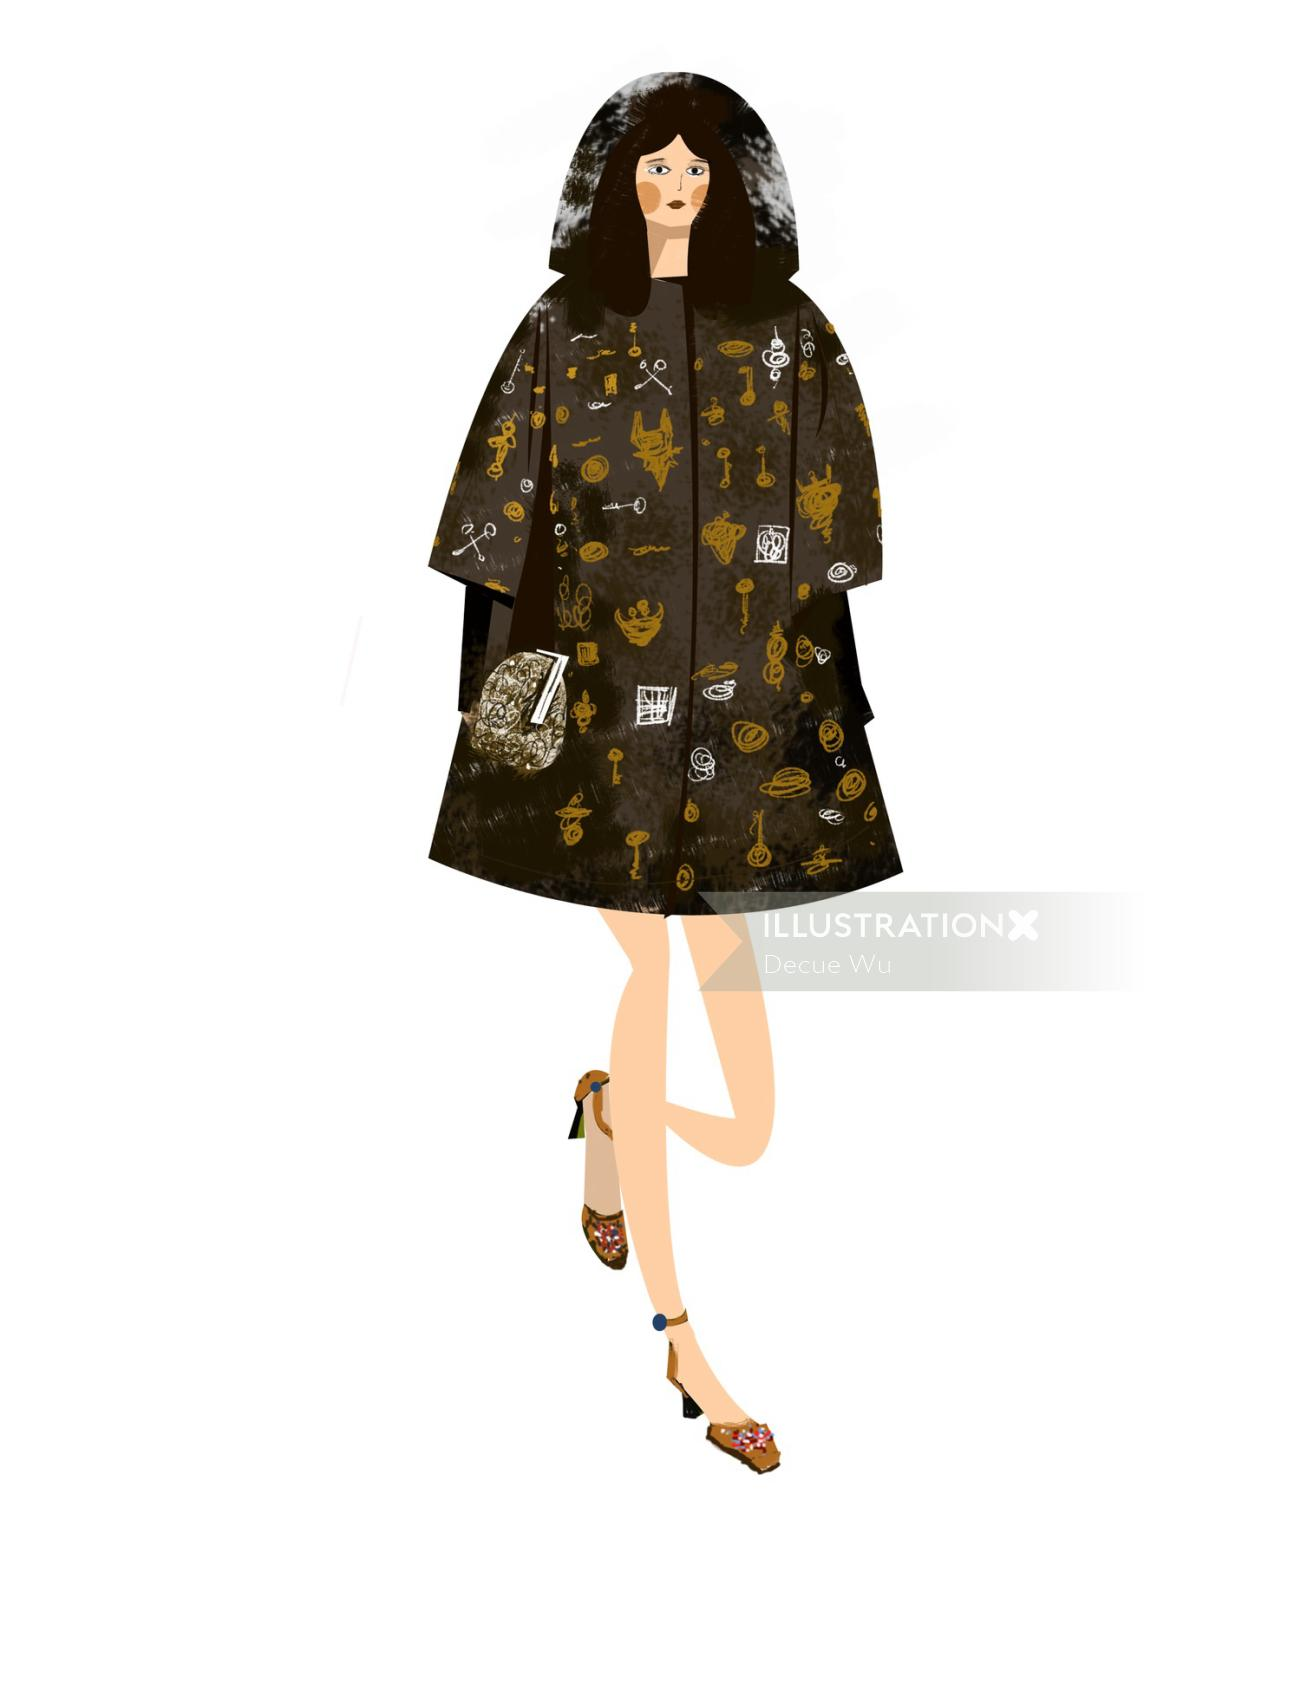 An illustration of women fashion dresses